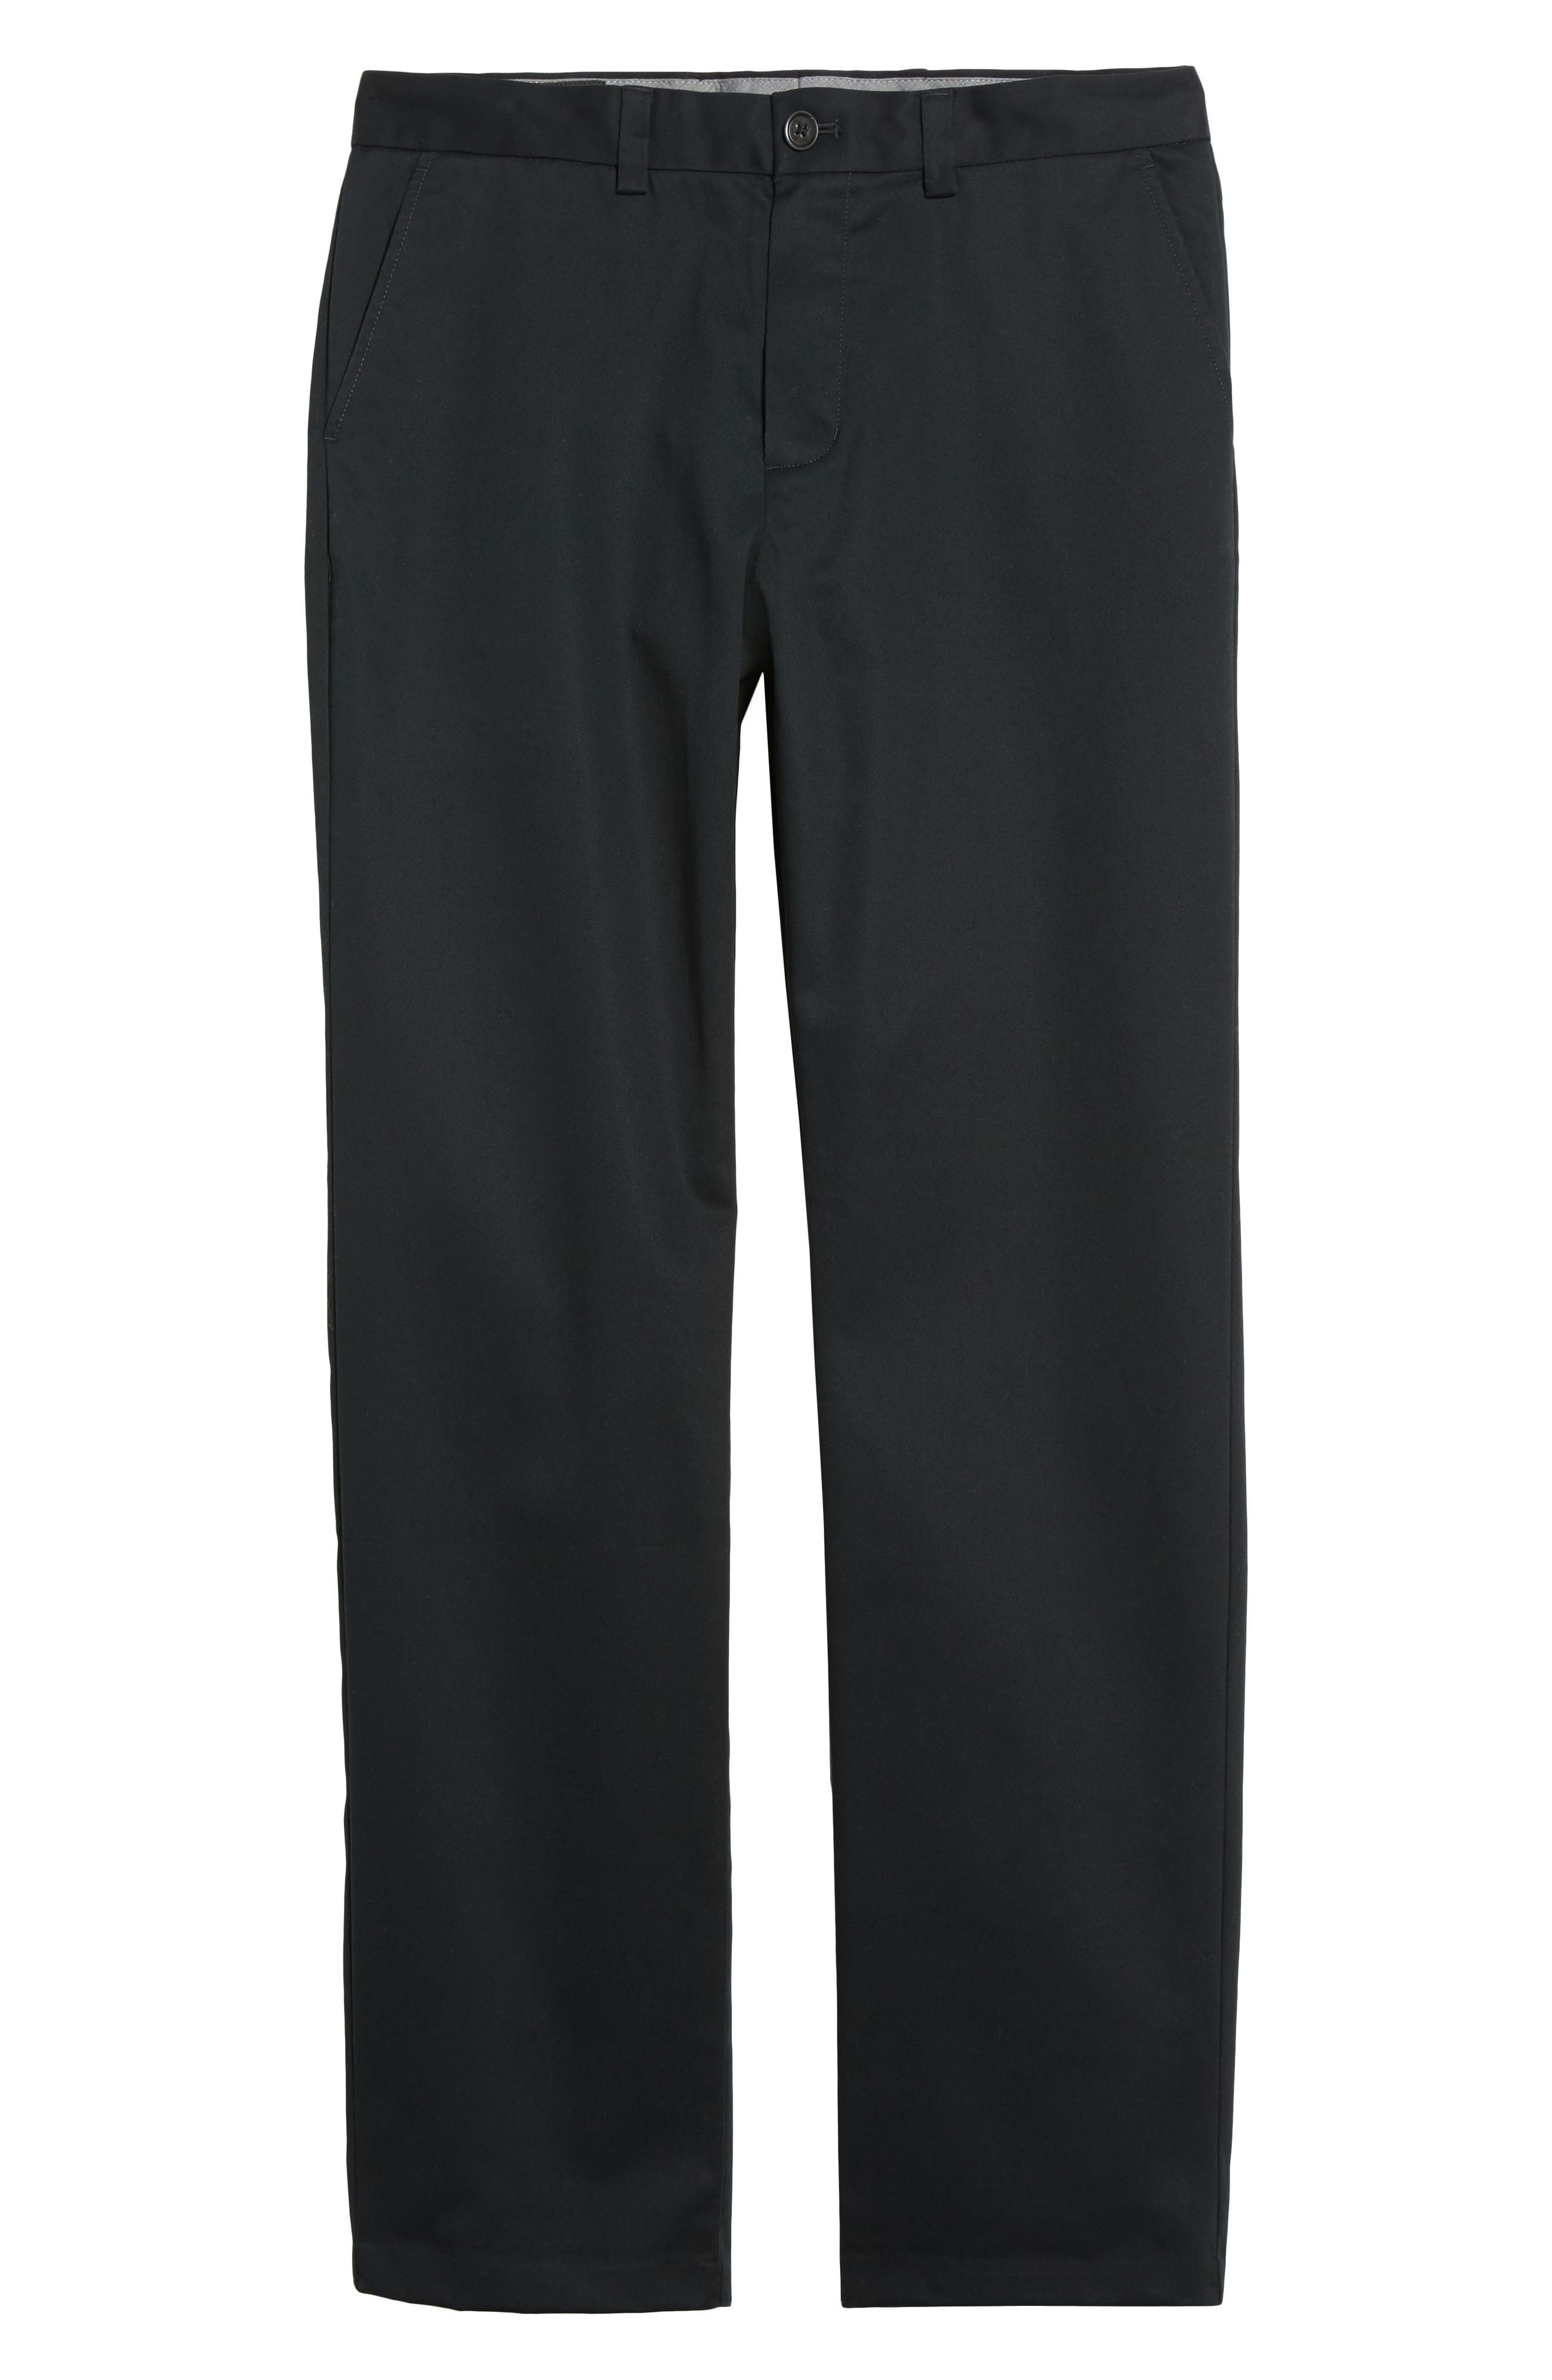 NORDSTROM MEN'S SHOP, Wrinkle Free Straight Leg Chinos, Alternate thumbnail 7, color, ANTHRACITE